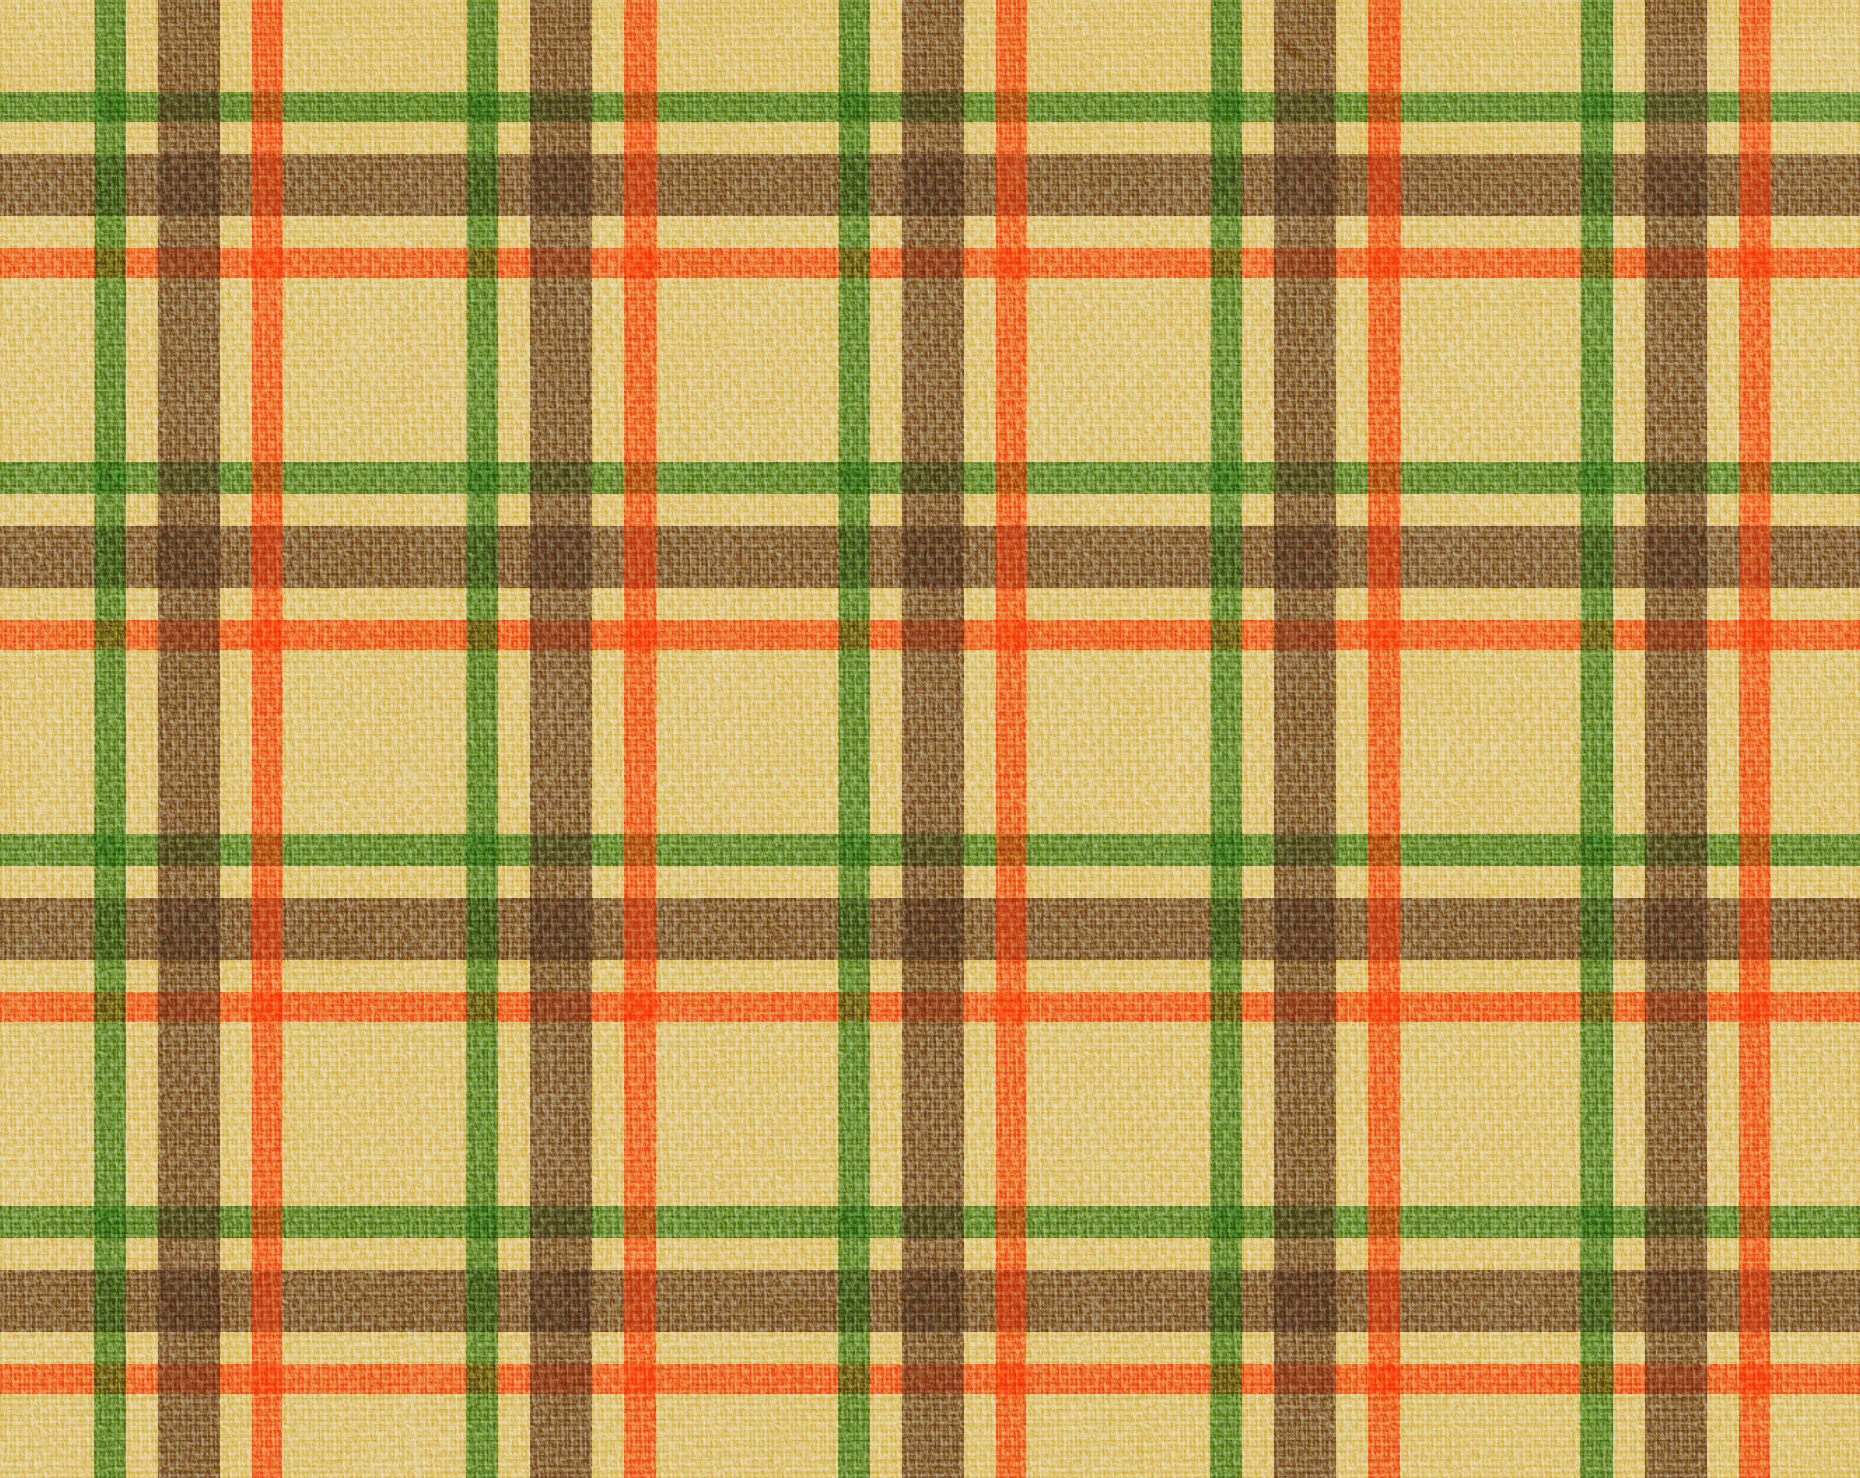 Checkered fabric texture, Backdrop, Squares, Picnic, Plaid, HQ Photo